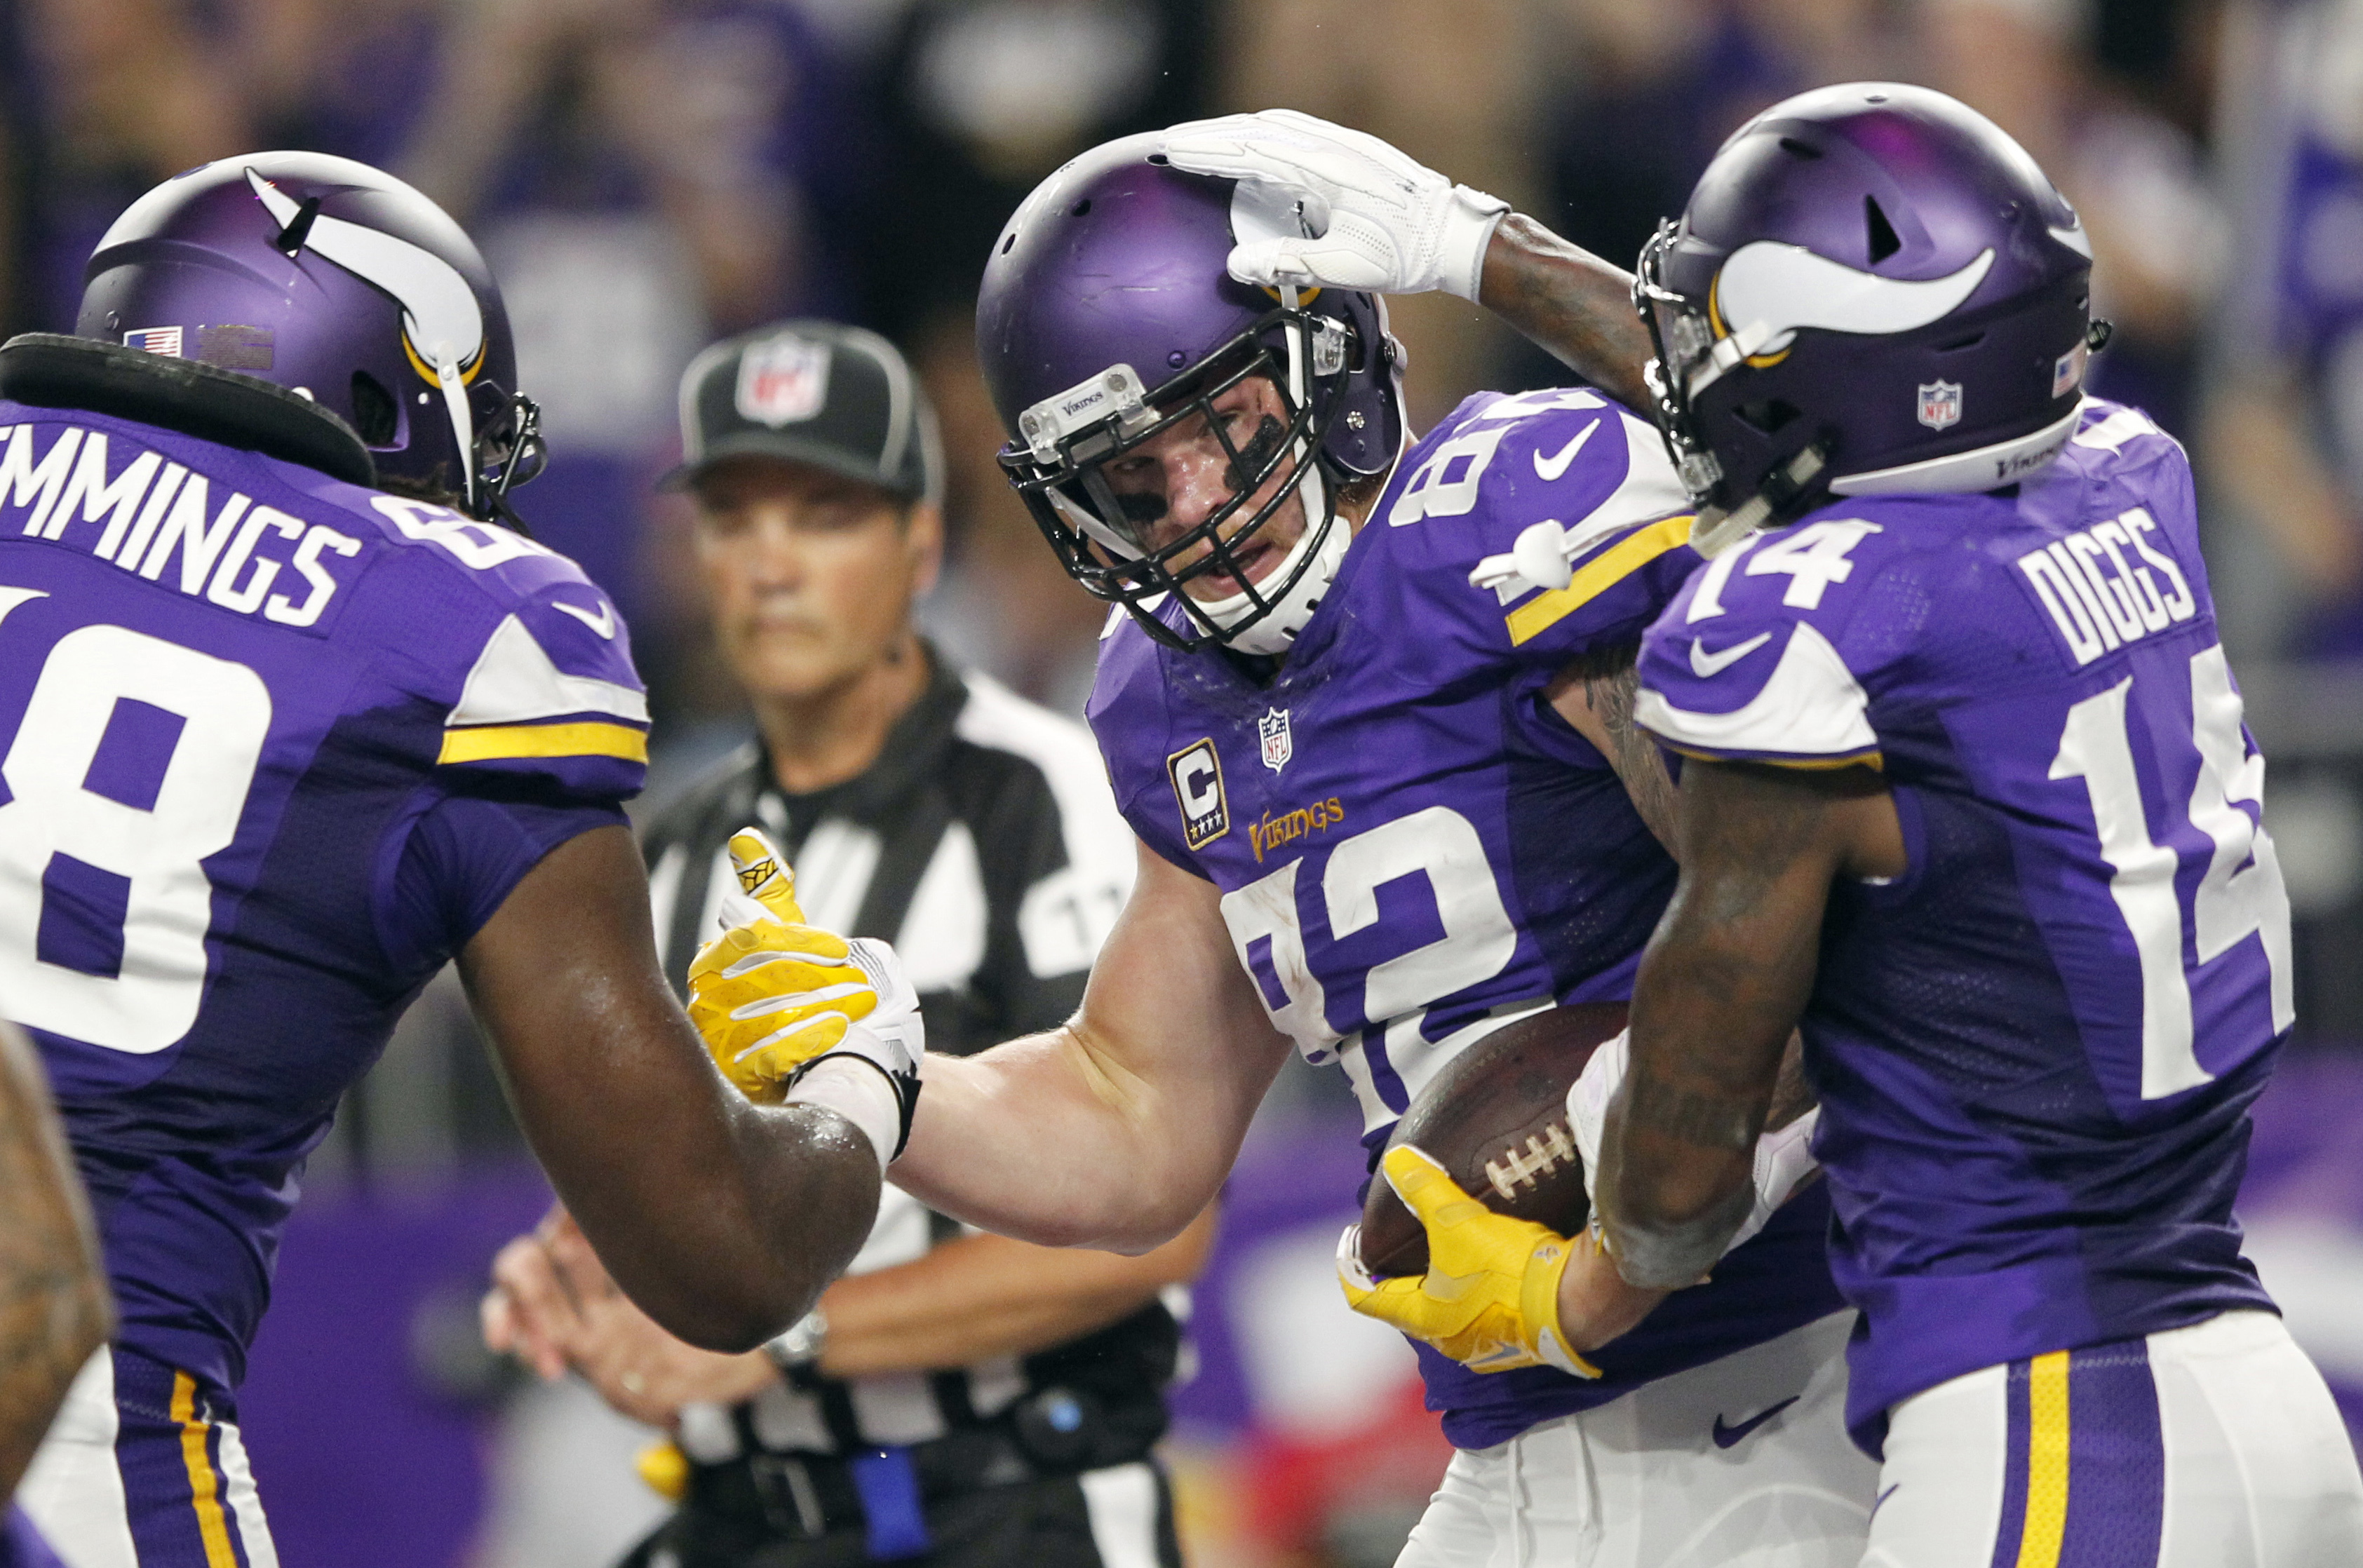 Minnesota Vikings tight end Kyle Rudolph, center, celebrates with teammates T.J. Clemmings, left, and Stefon Diggs, right, after catching a 7-yard touchdown pass during the first half of an NFL football game against the New York Giants on Monday, Oct. 3,